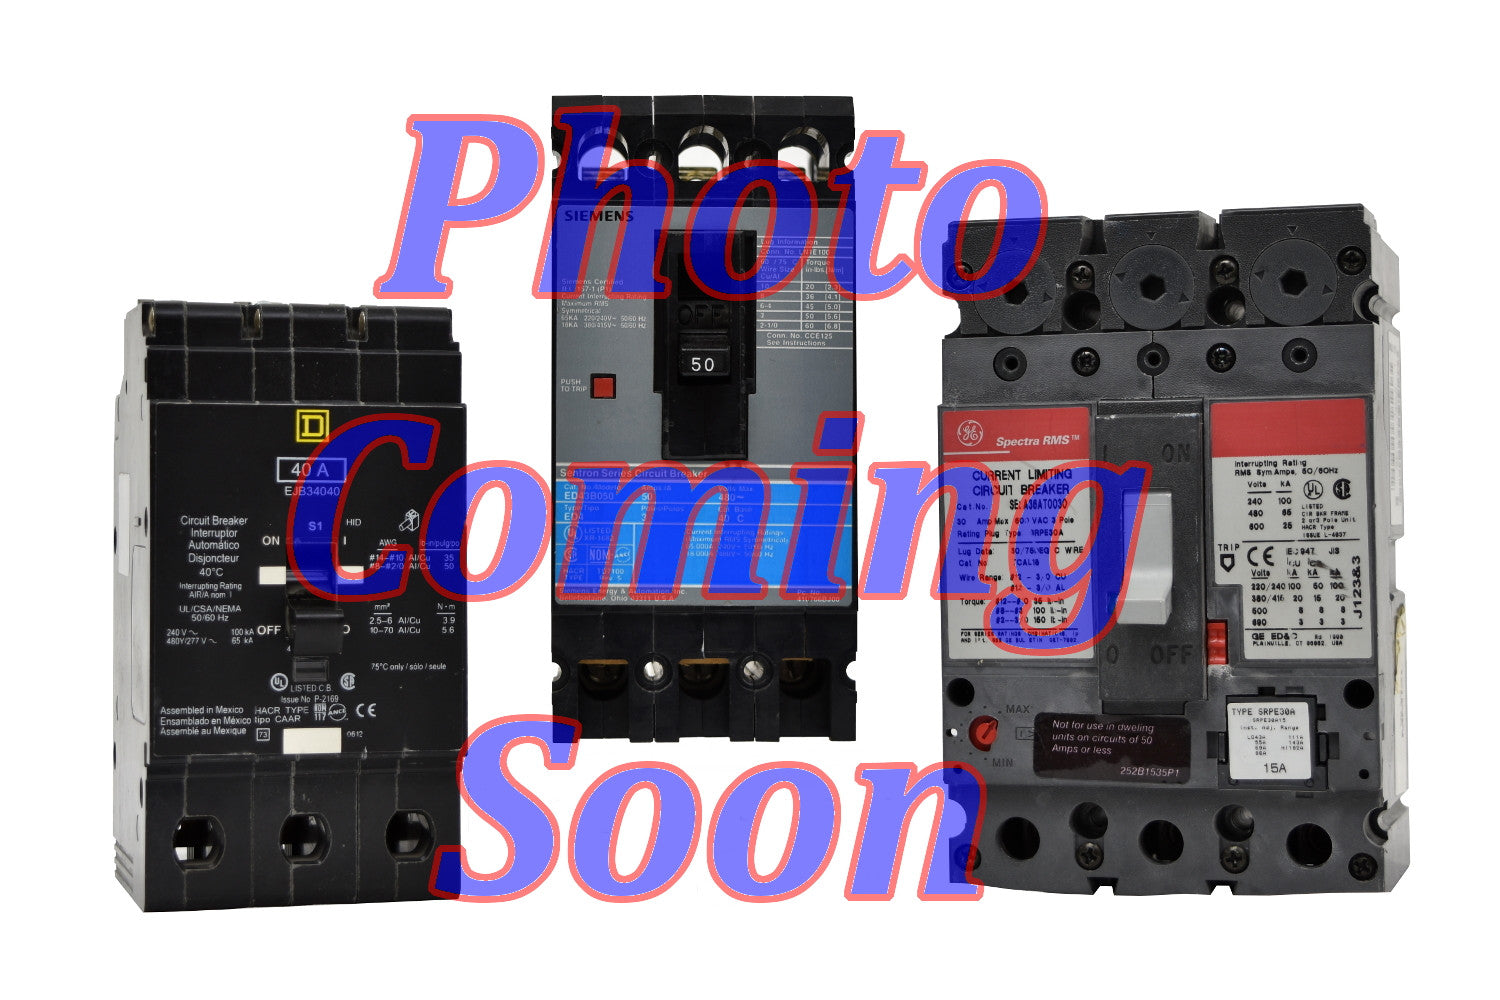 General Electric FCV36TE080R1 Circuit Breakers